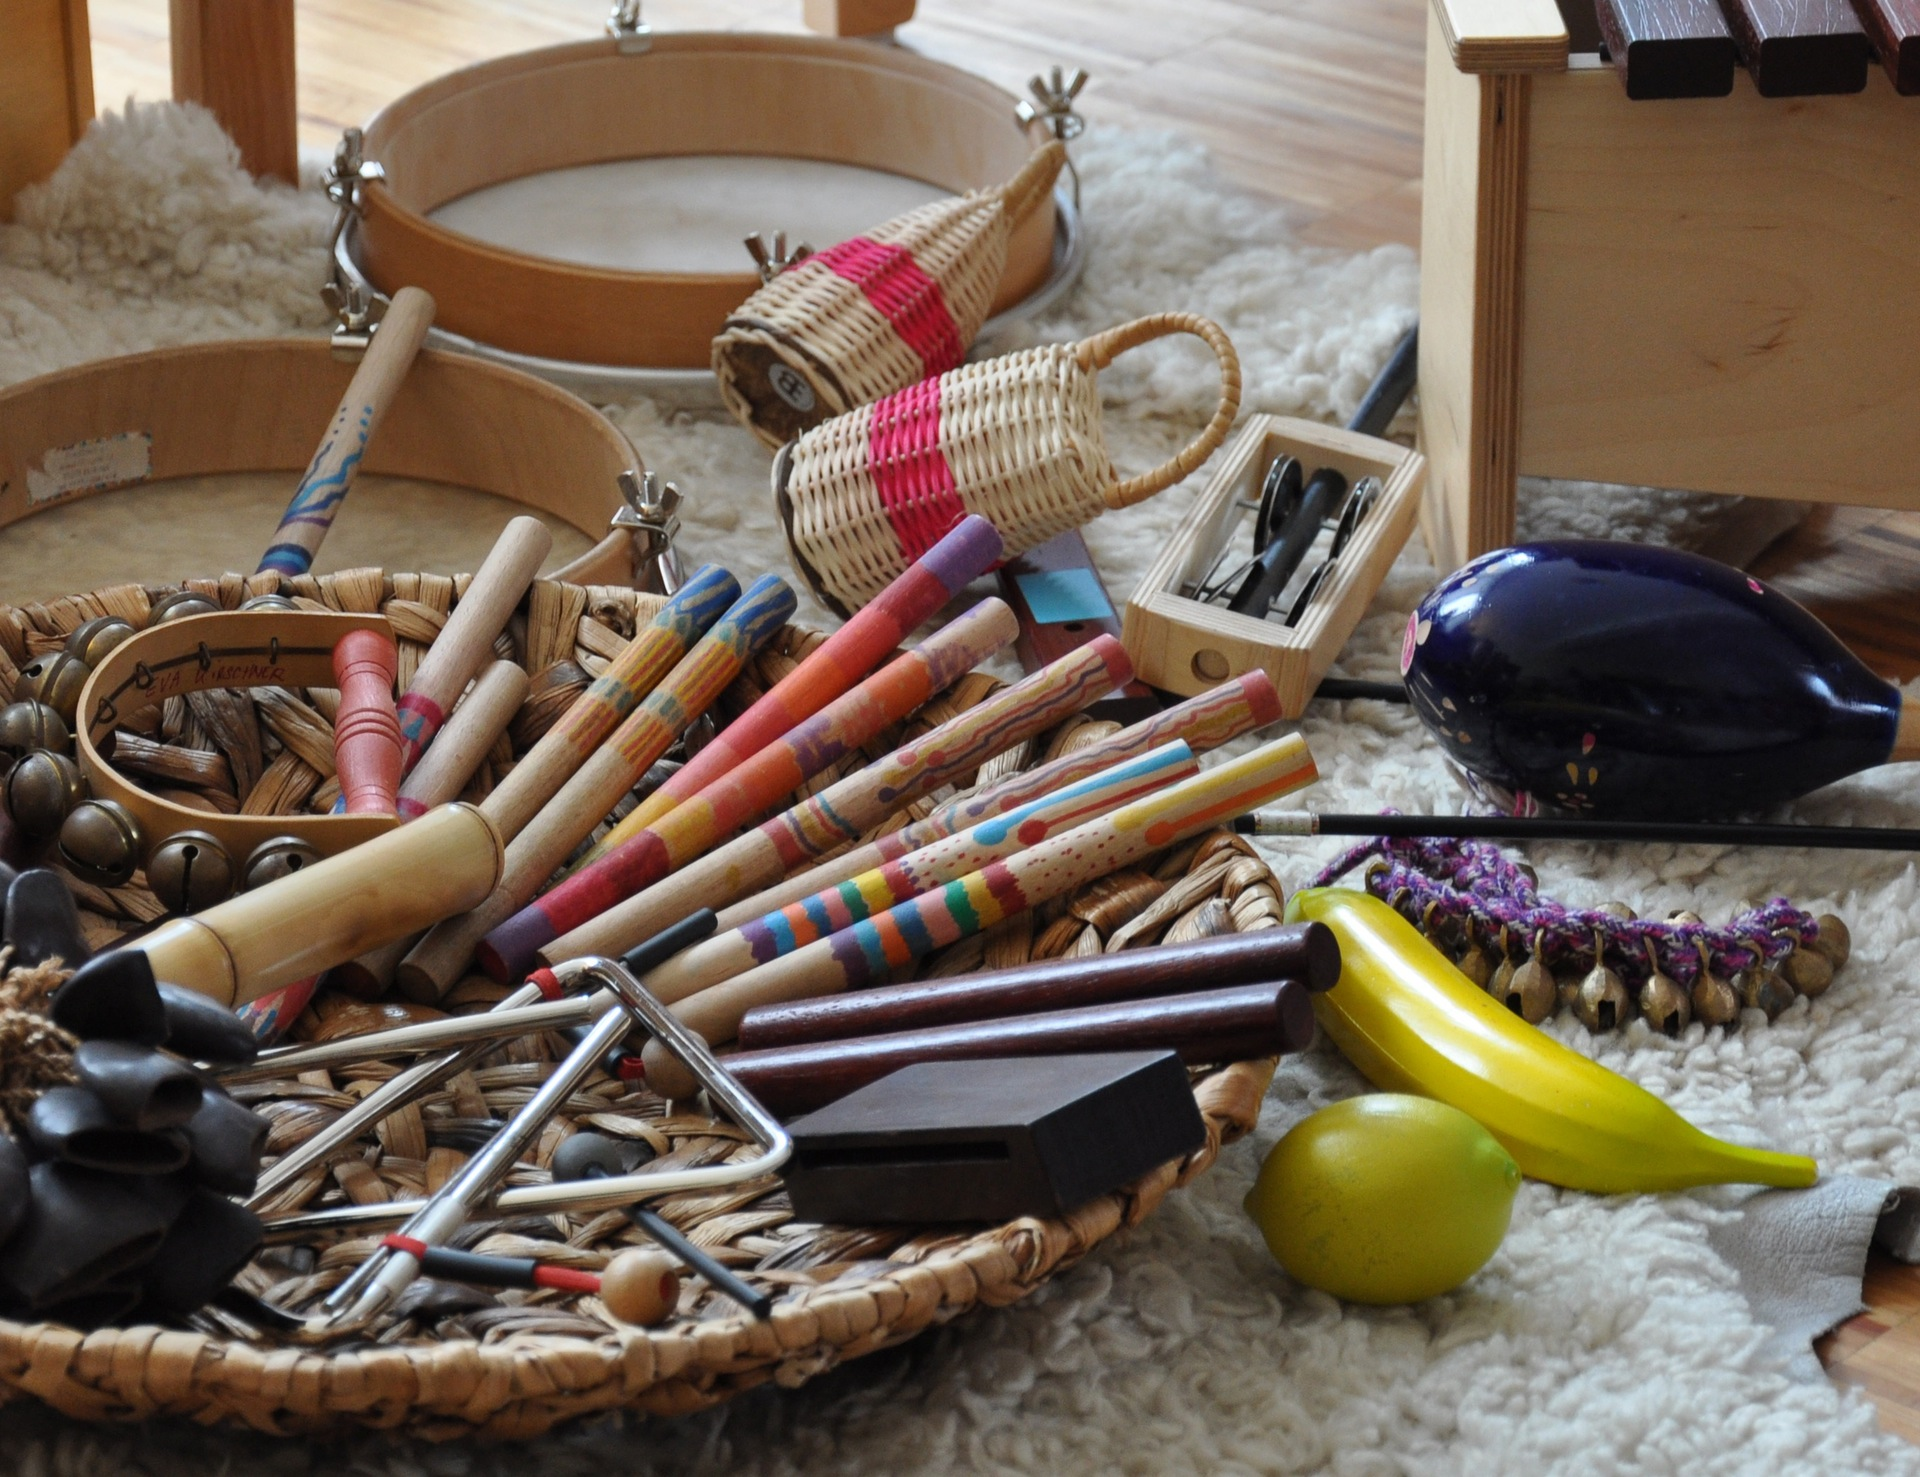 instruments-orff-early-education-music-159849